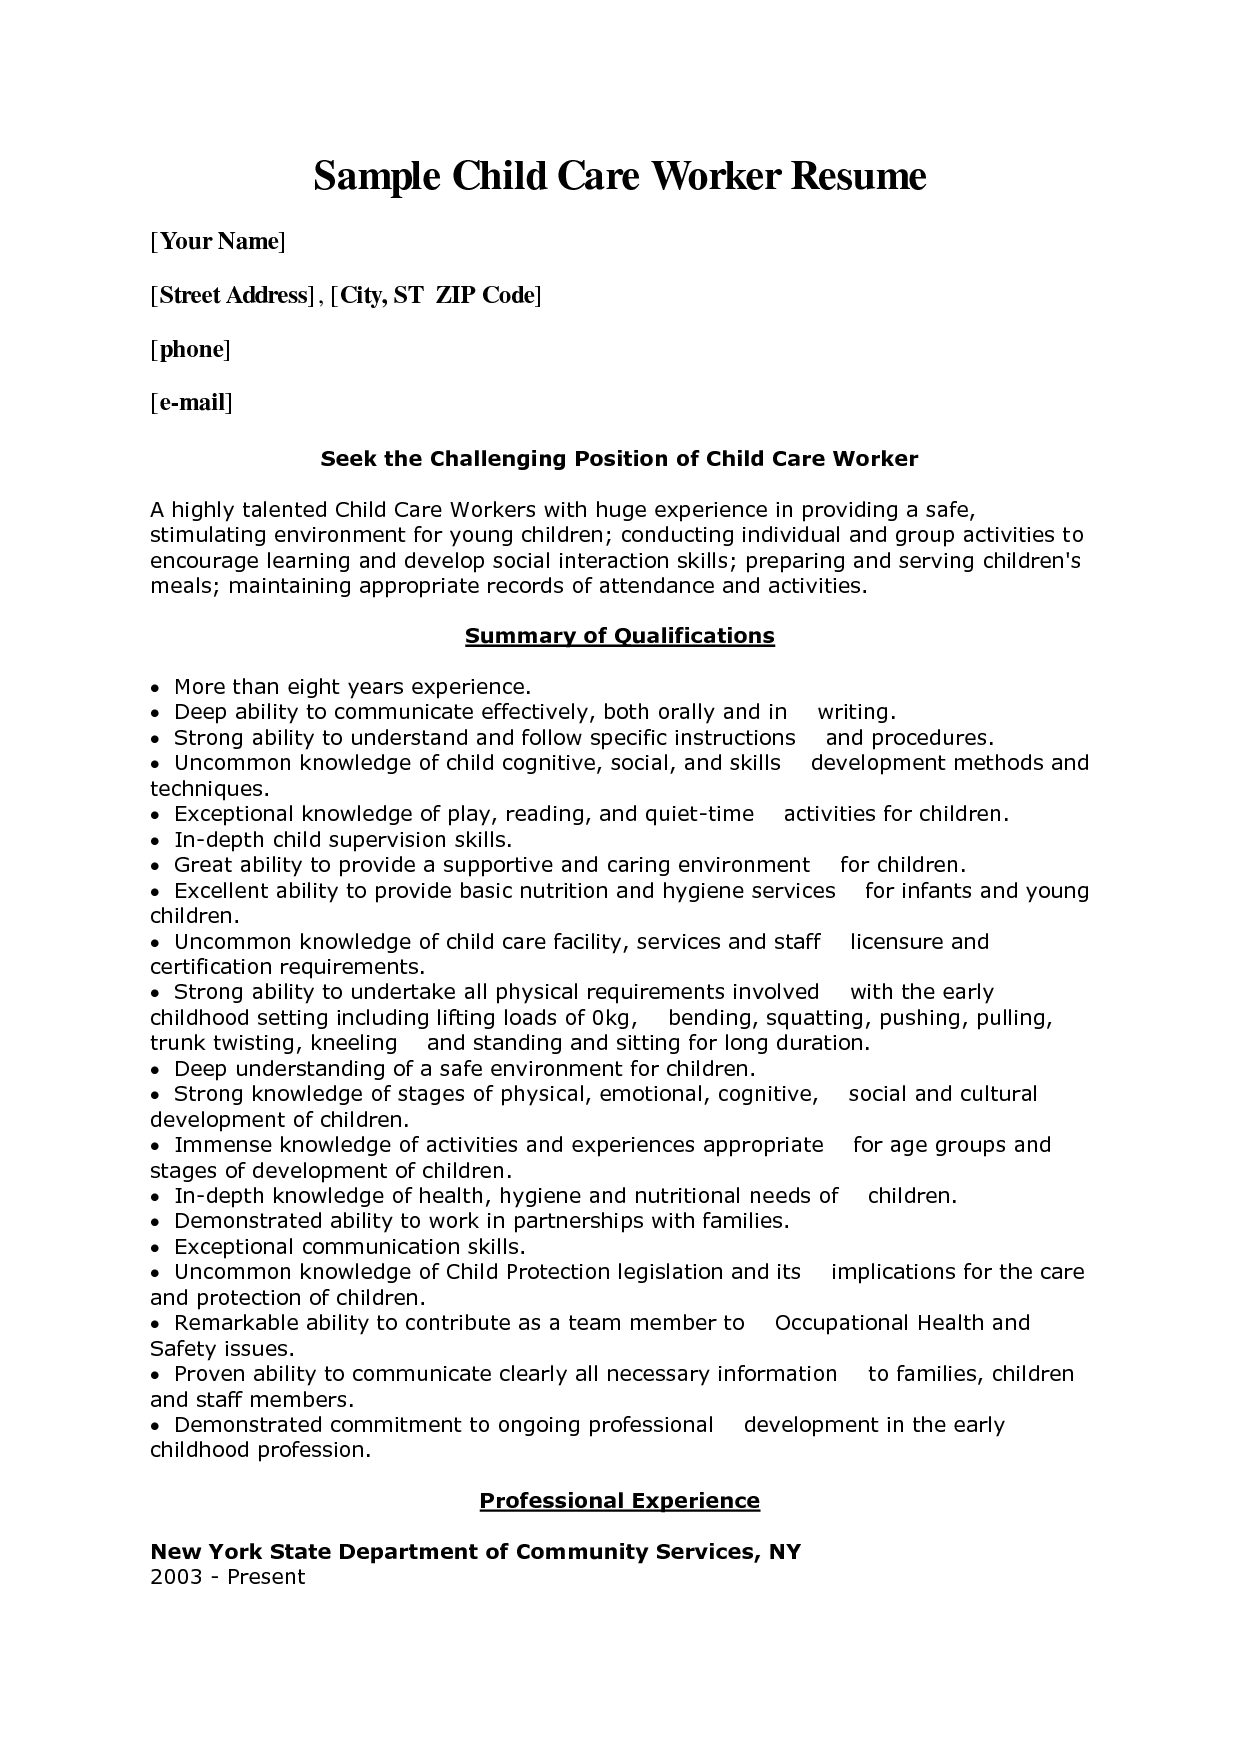 Good Child Welfare Specialist Sample Resume 10 Resume Cover Letter For Child Care  Worker   Writing Resume . Within Child Care Resume Sample